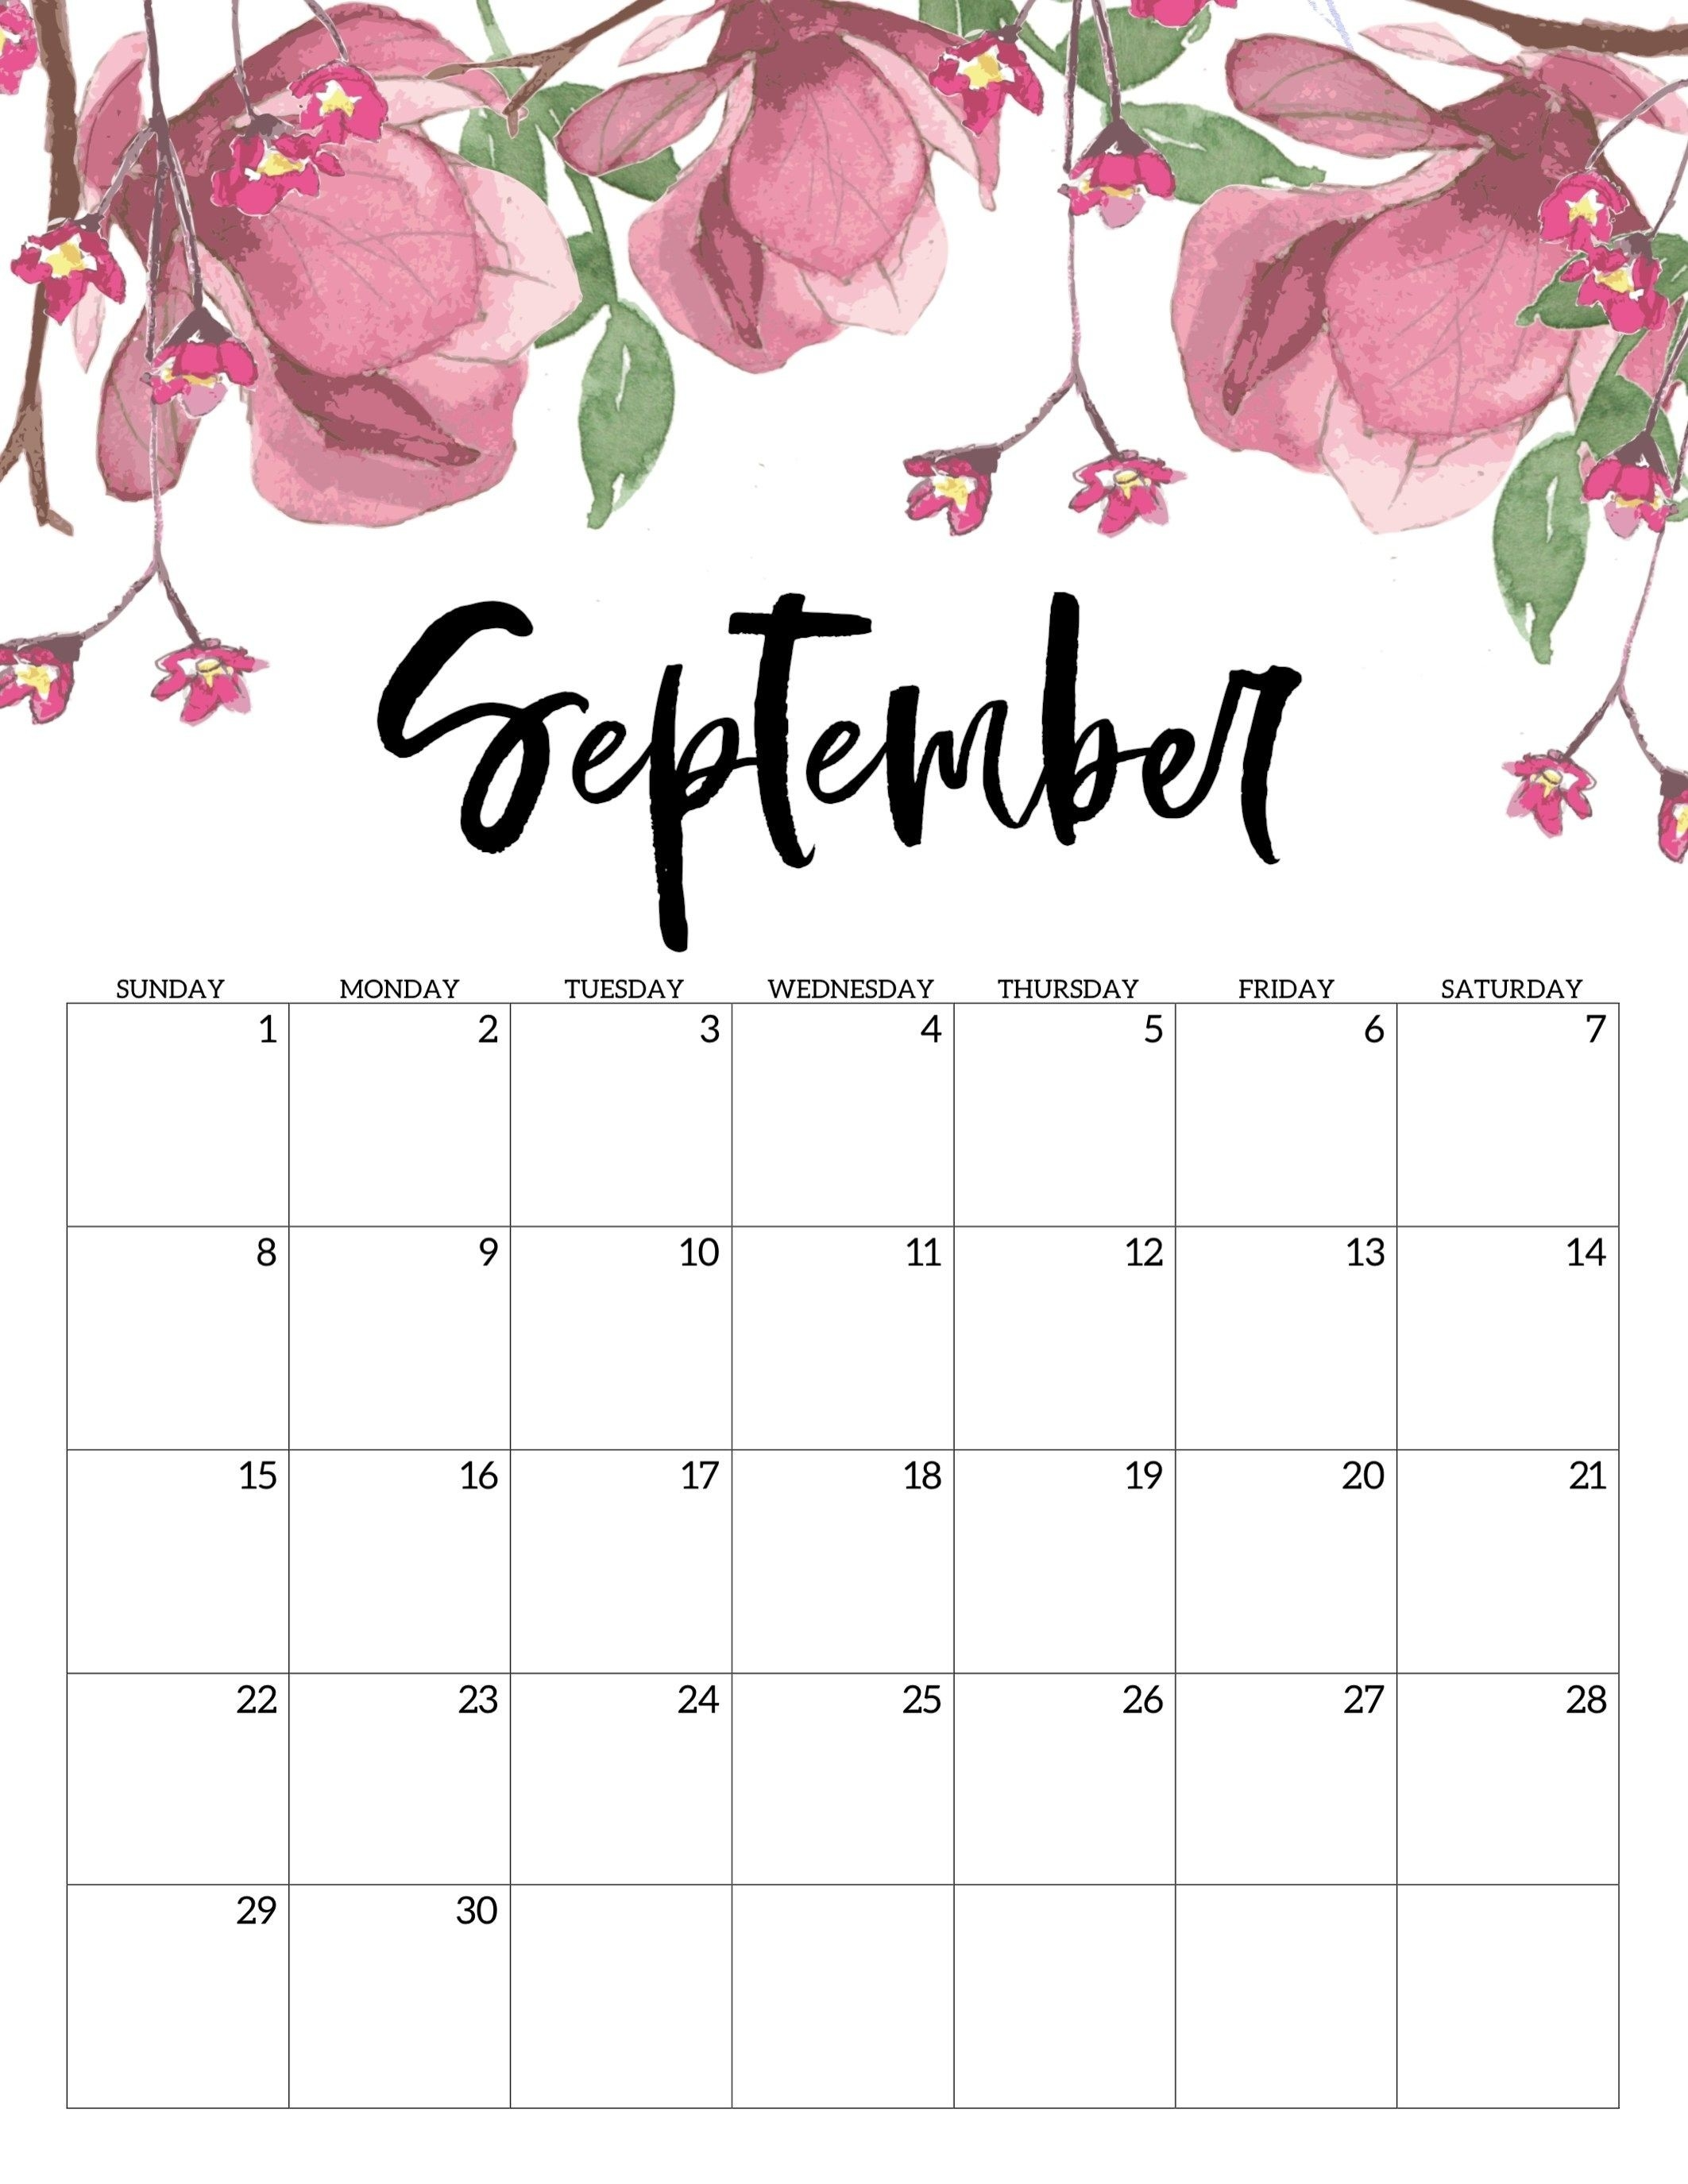 Free Printable Calendar 2019 - Floral - Paper Trail Design-Template For Calendars With Flowers